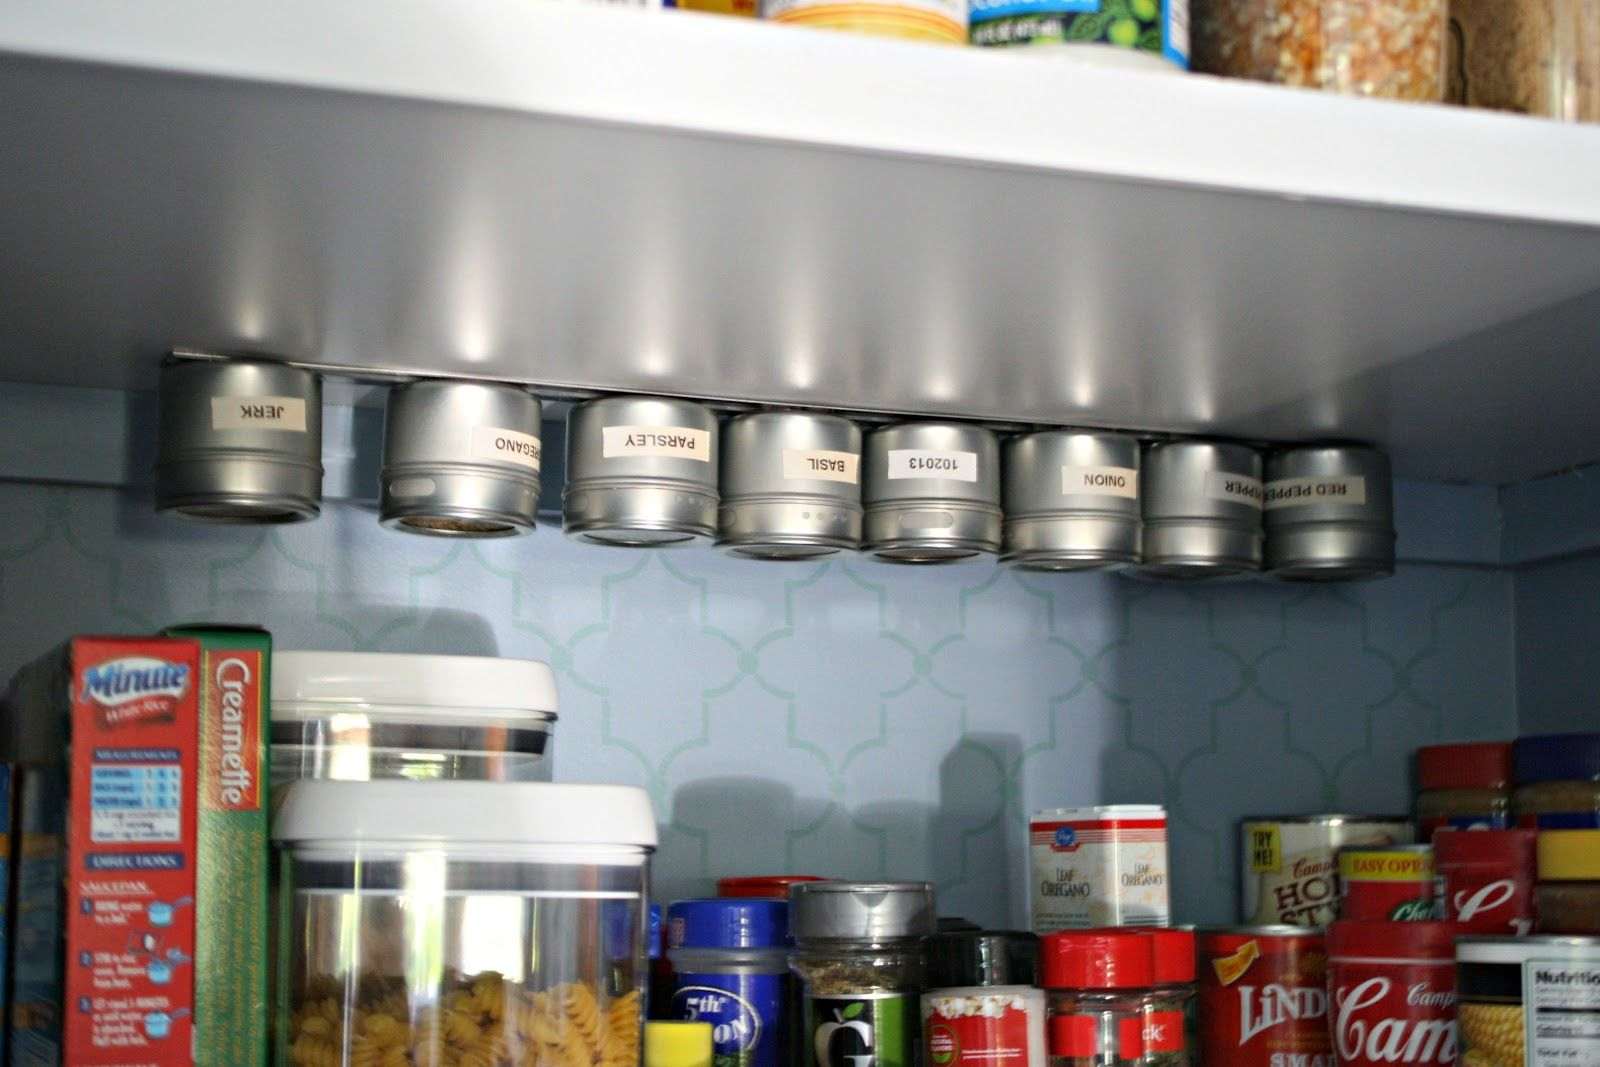 Gaining Kitchen Storage | Store, Organizations and Organizing